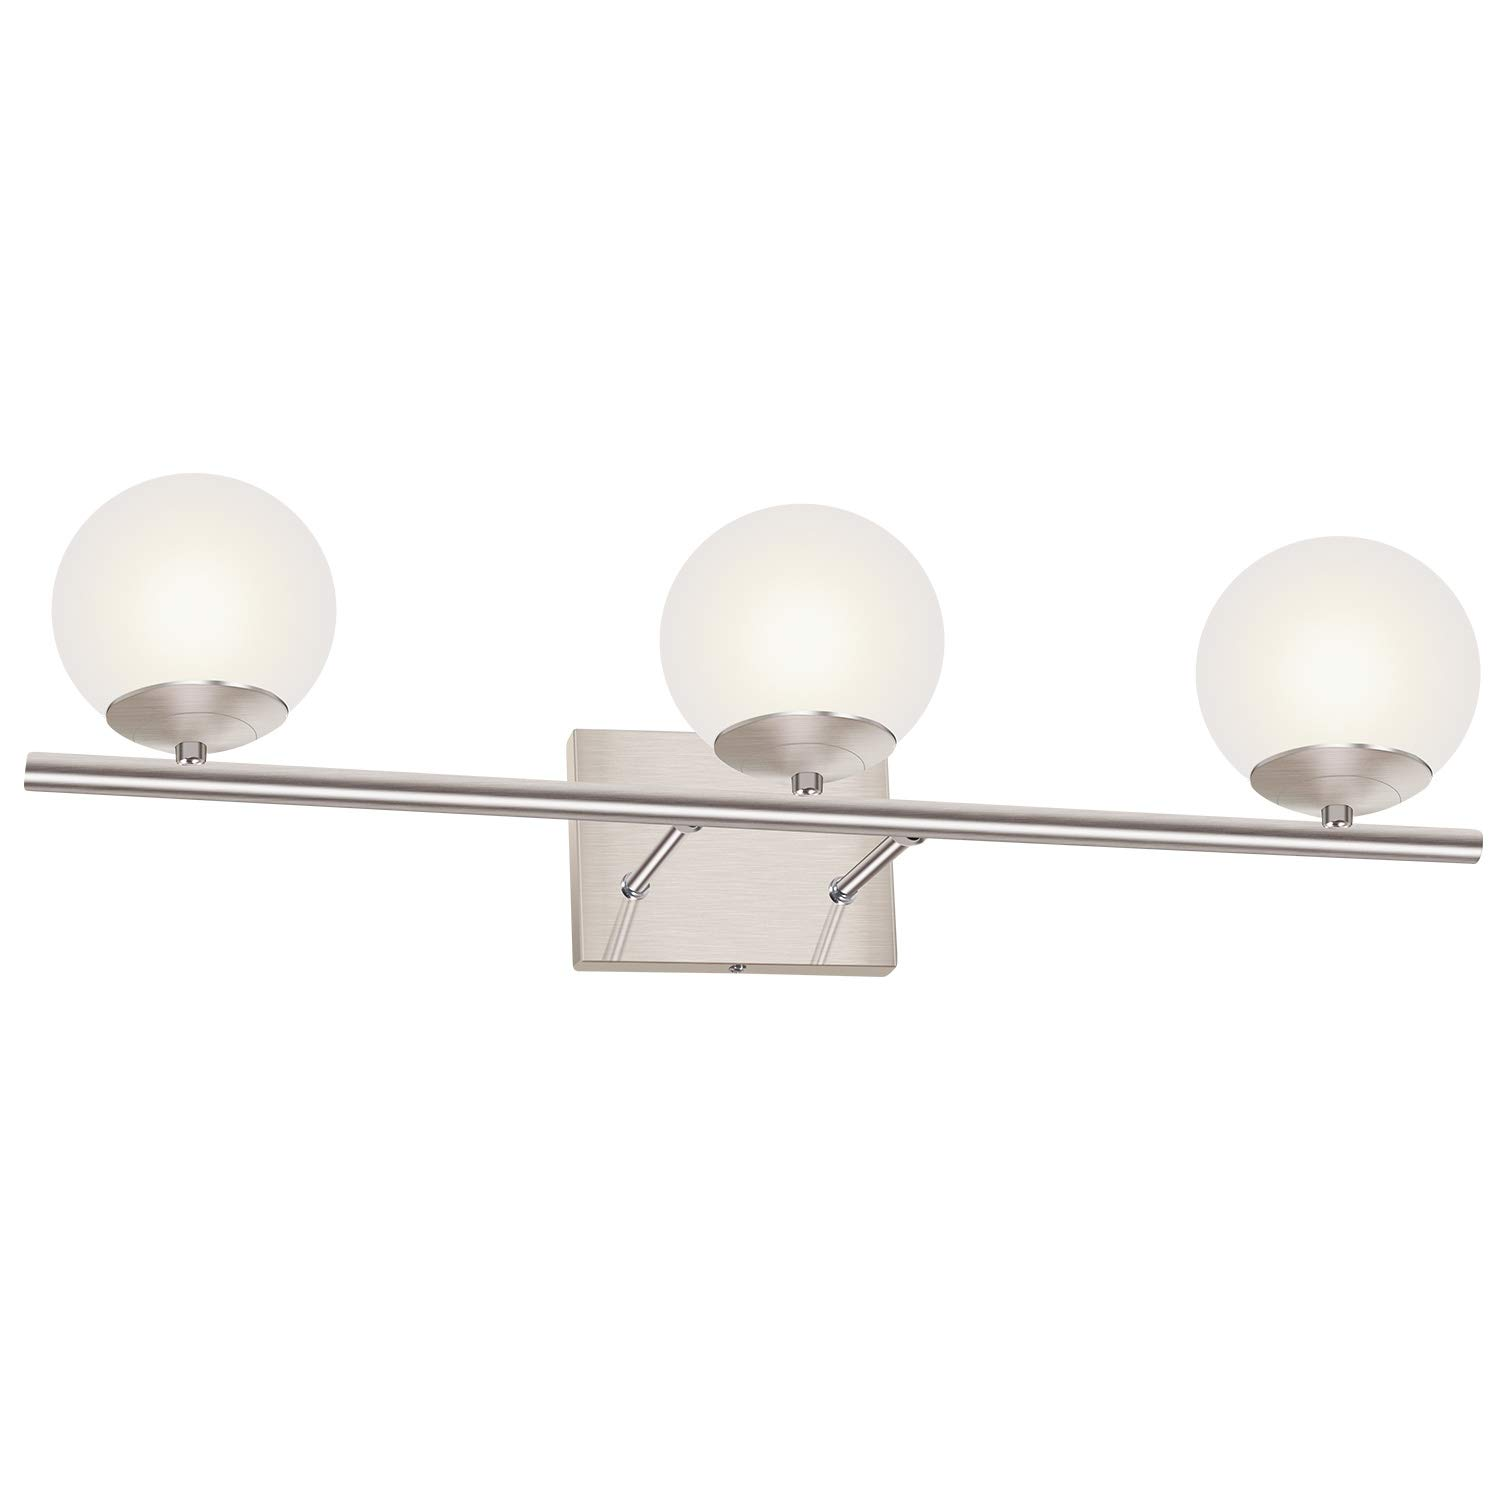 YHTlaeh New Bathroom Vanity Light Fixtures Brushed Nickel Glass Shade Three Light Modern Wall Bar Sconce Over Mirror